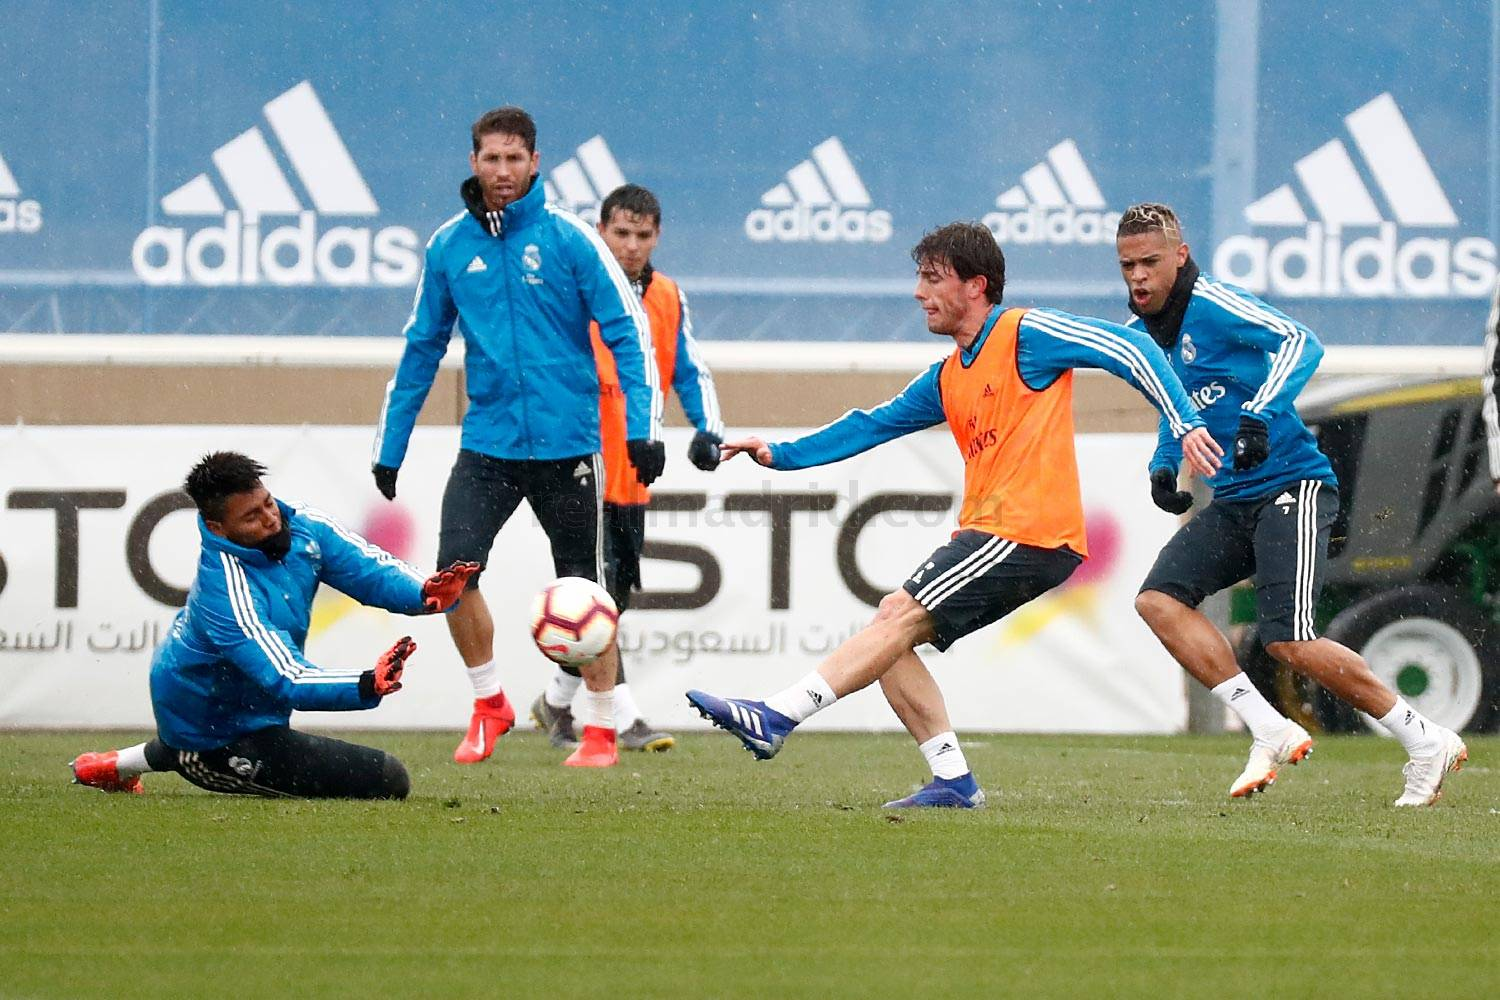 Real Madrid - Entrenamiento del Real Madrid - 06-03-2019